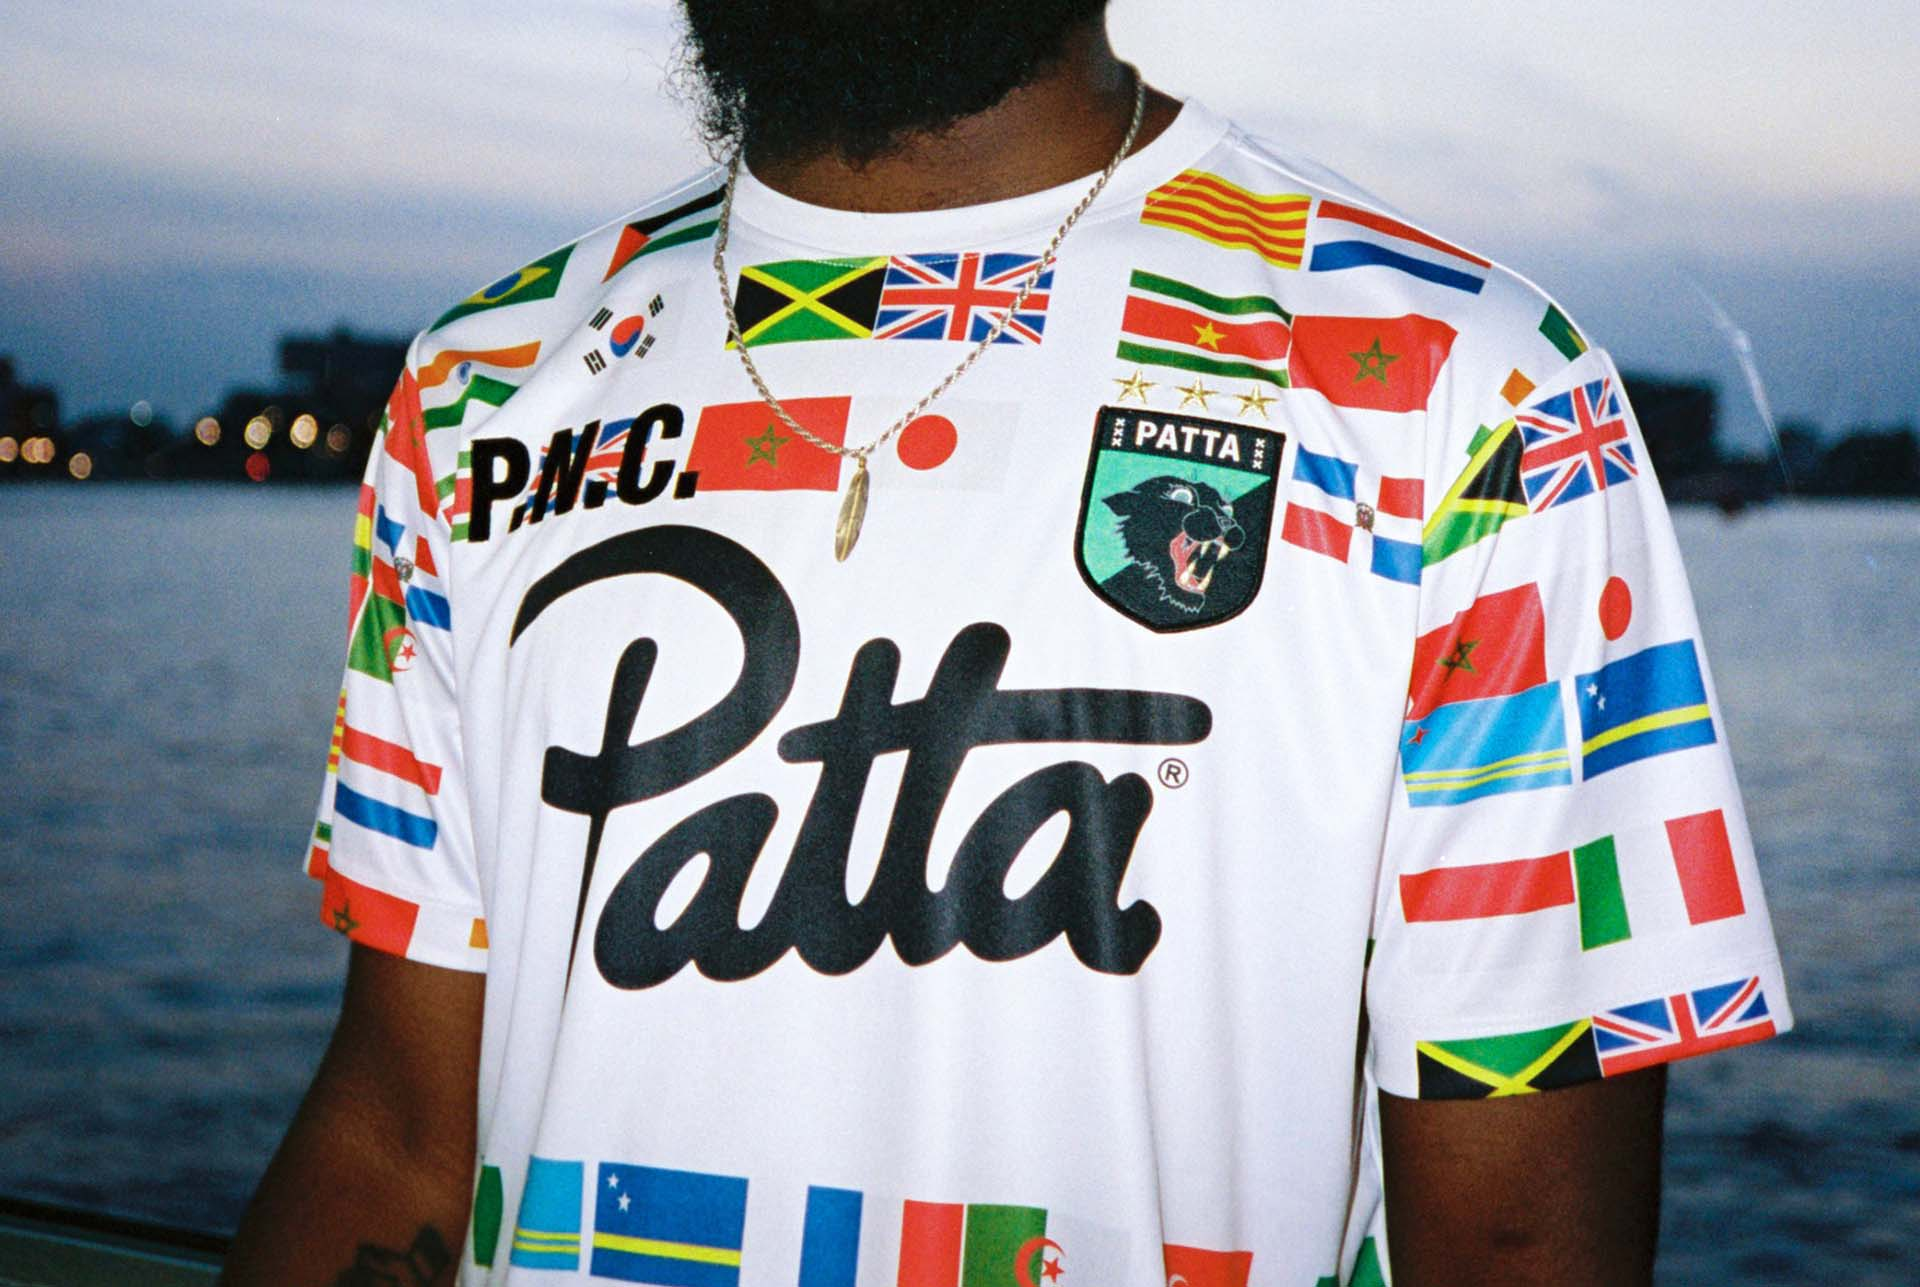 patta-football-shirt-2.jpg